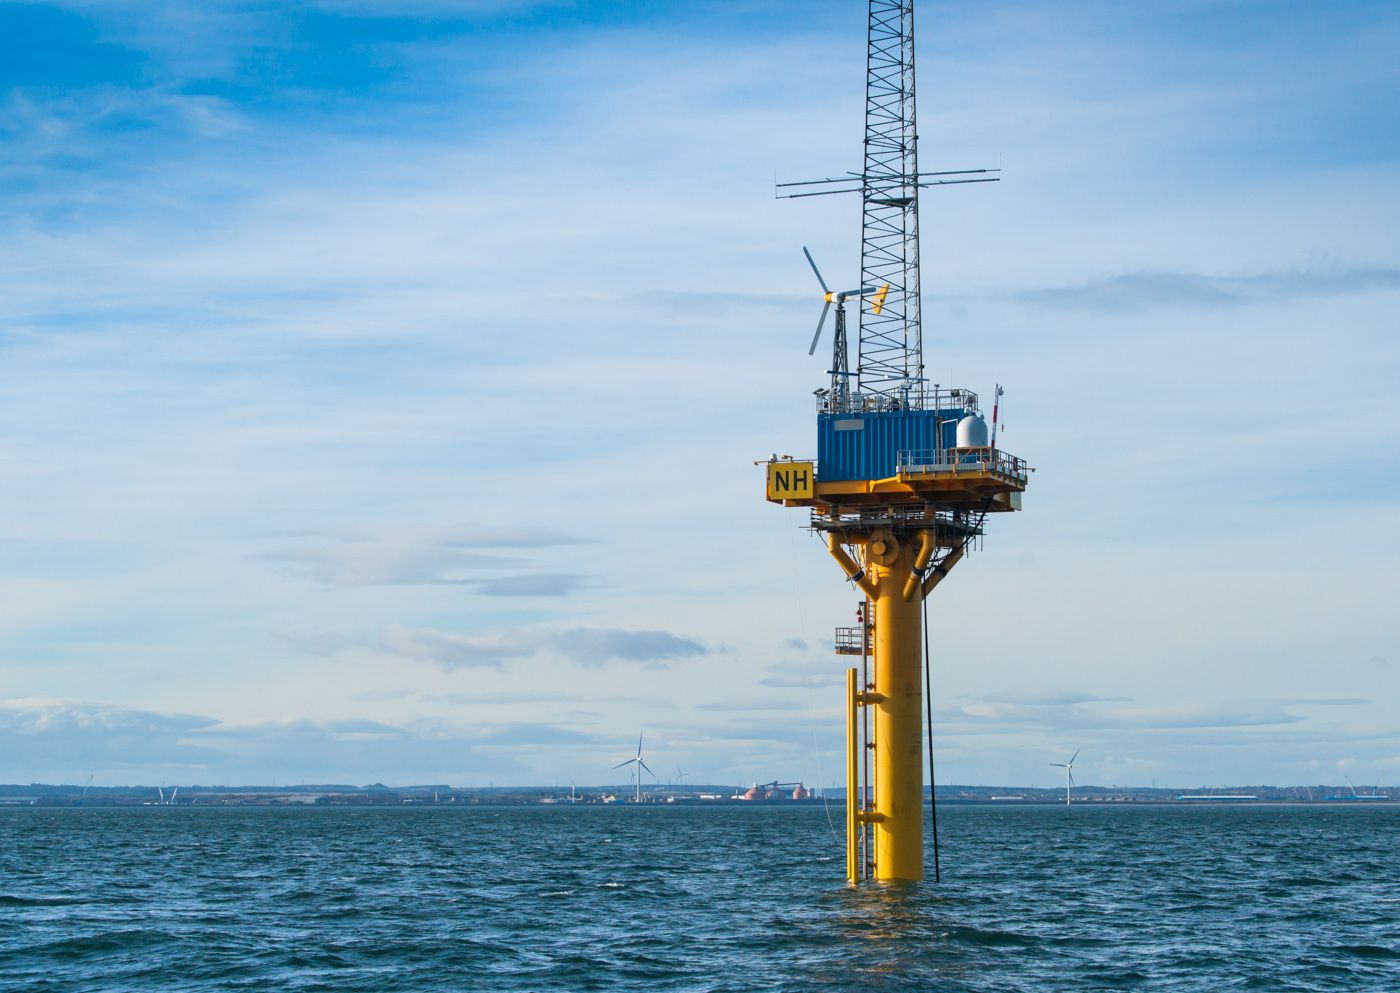 The Catapult's National Offshore Anemometry Hub (NOAH), off the coast of Blyth, Northumberland.